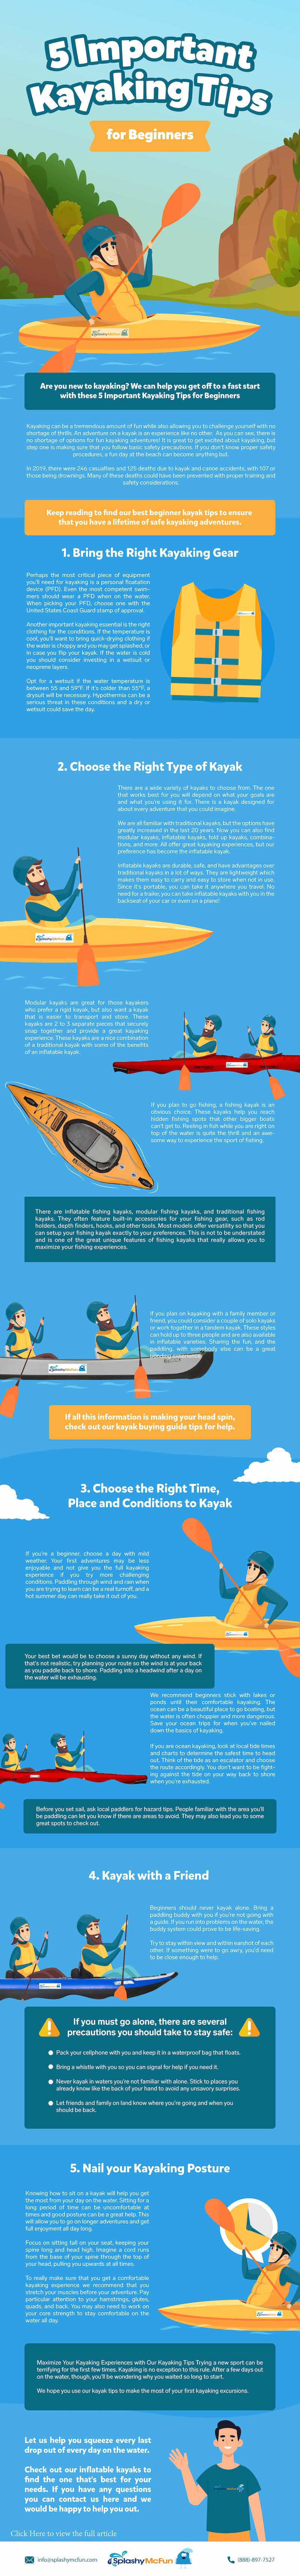 Infographic showing illustrations of the 5 Best Kayaking Tips for Beginners